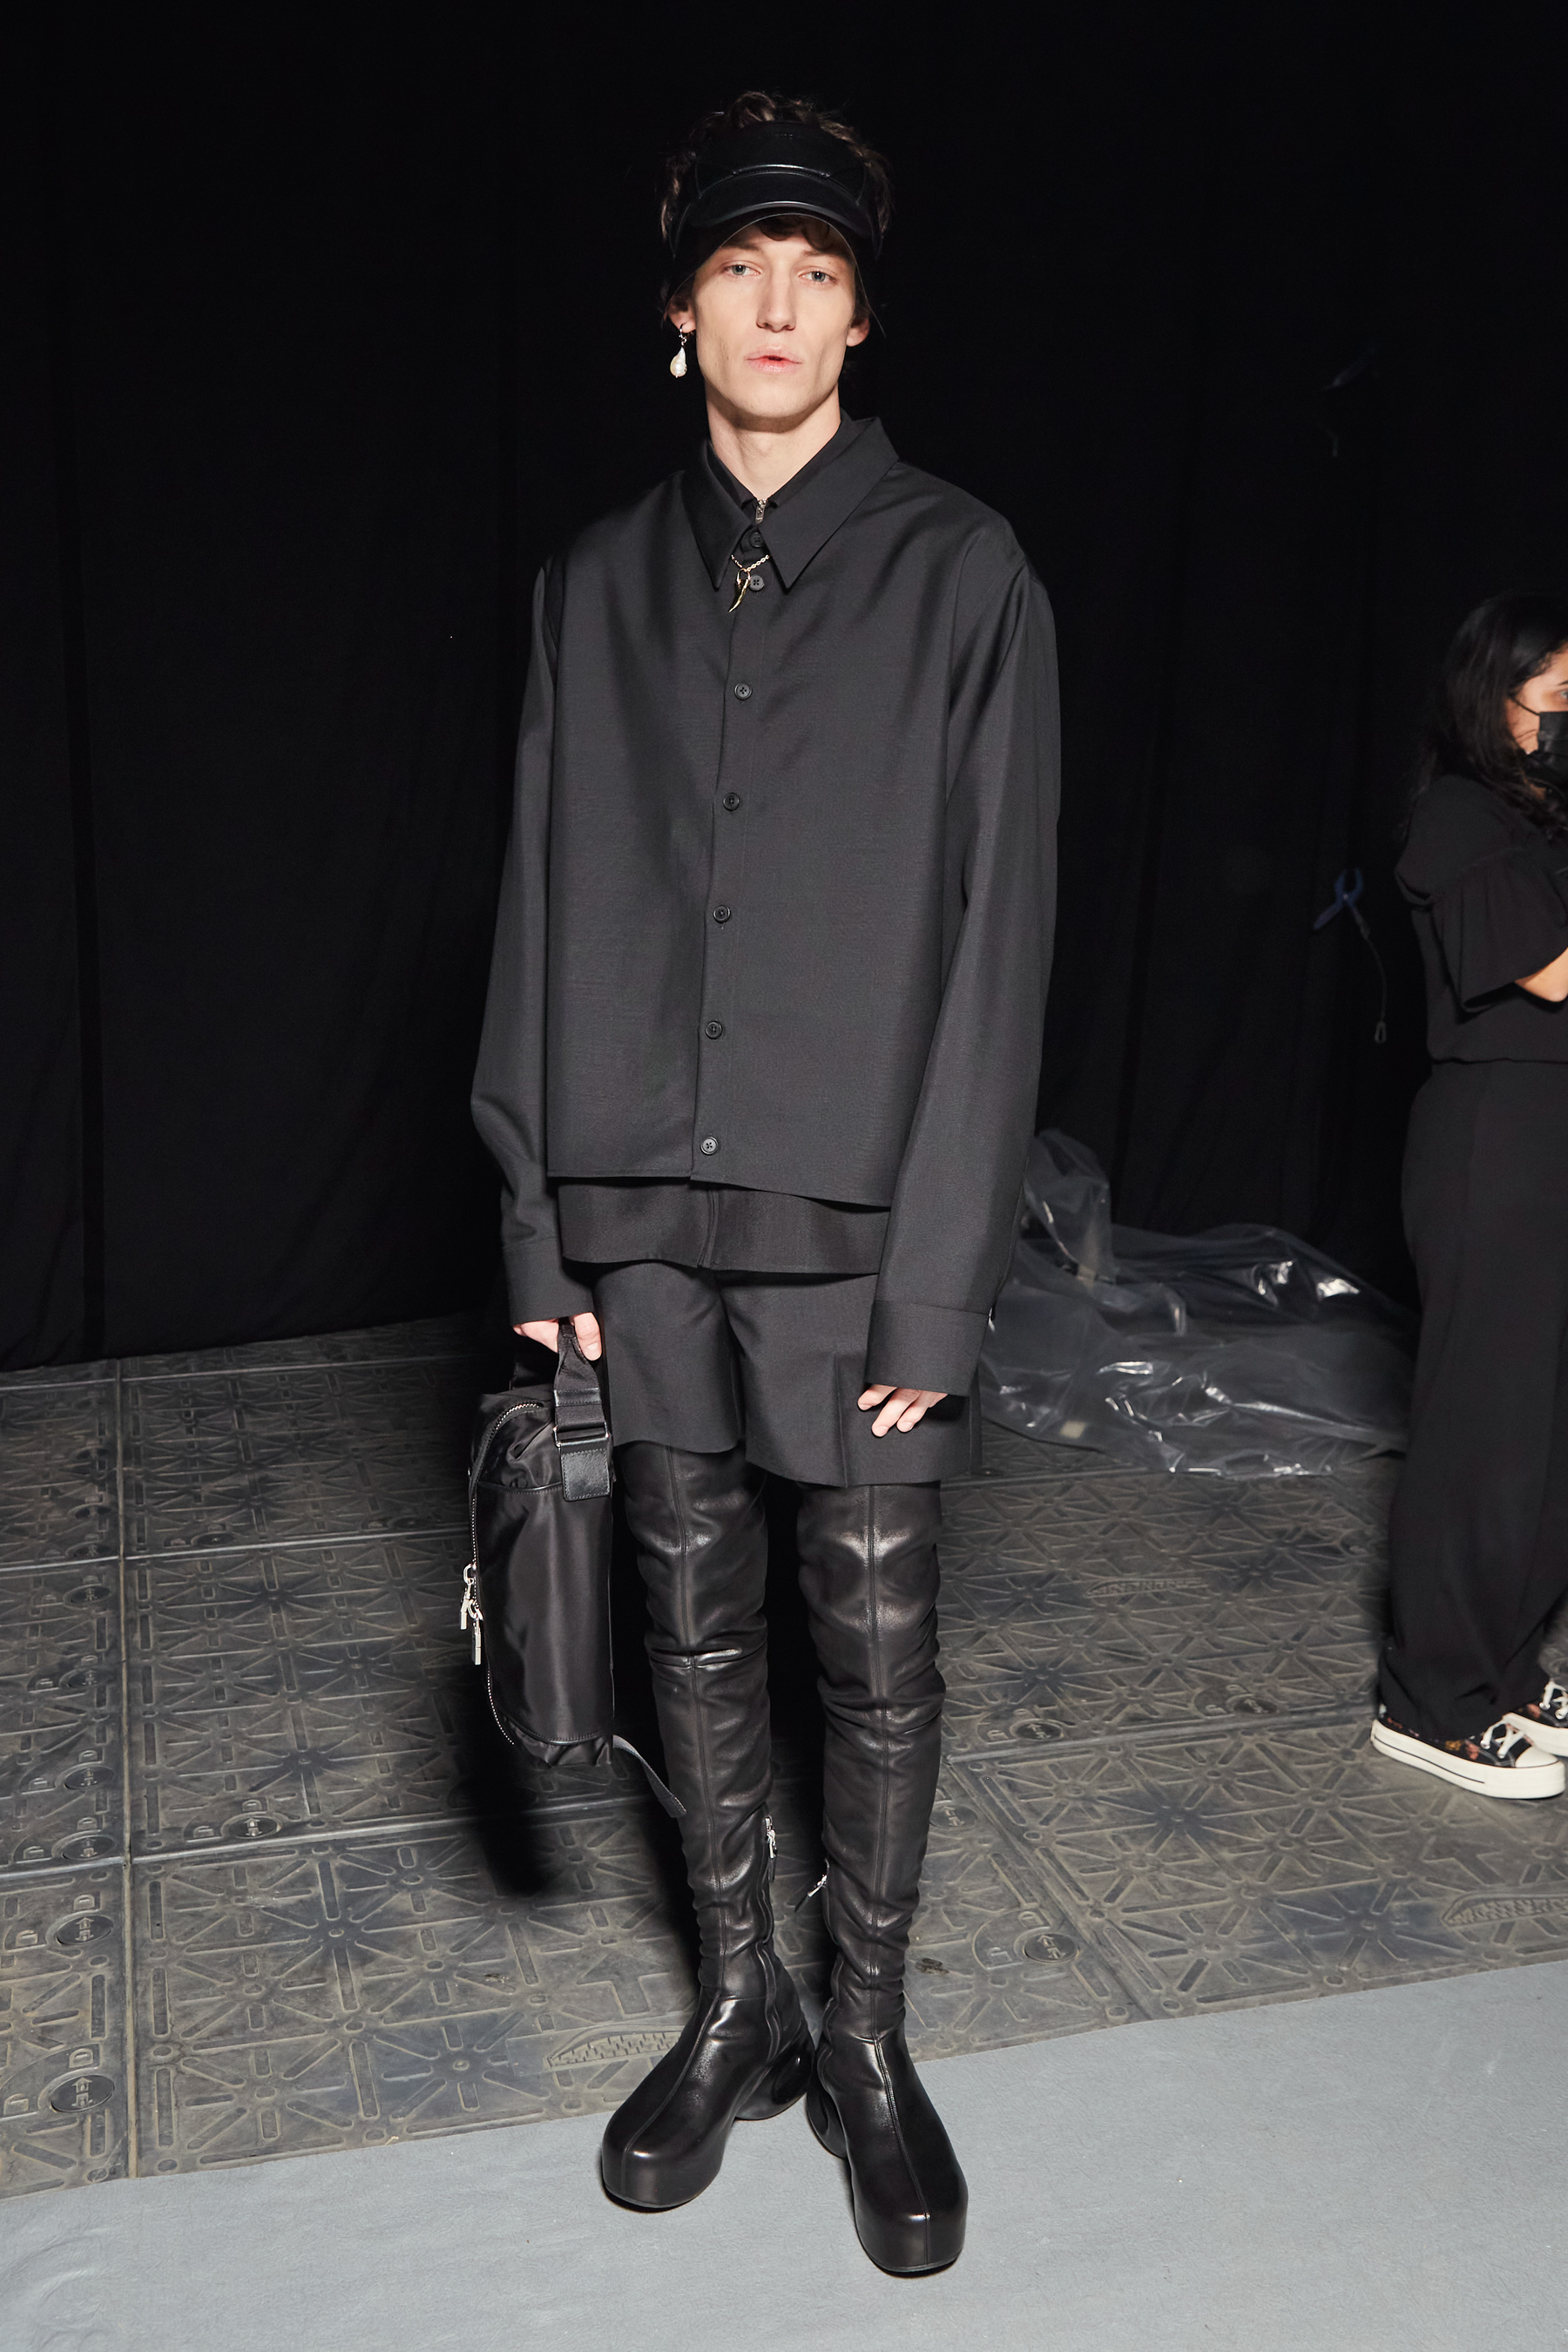 Givenchy Spring 2022 Backstage Fashion Show